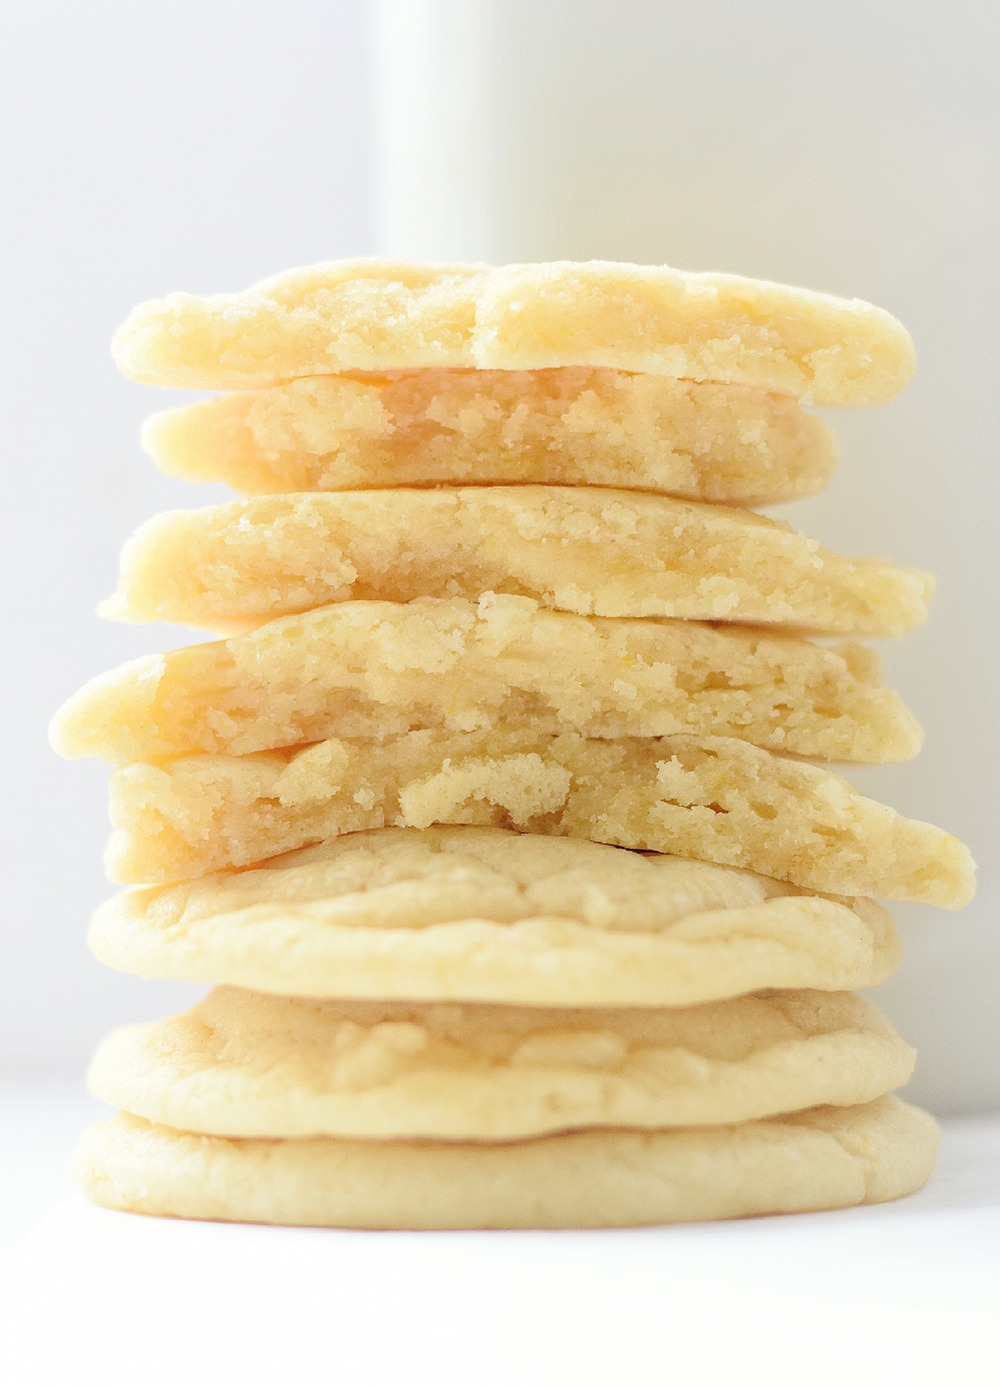 No-ButterNo-Butter Soft Lemon Cookies: soft, chewy, easy cookies full of fresh lemon flavor. So rich and gooey from the coconut oil! | TrufflesandTrends.com Lemon Cookies ? soft, chewy, easy cookies full of fresh lemon flavor. So rich and gooey from the coconut oil! | TrufflesandTrends.com